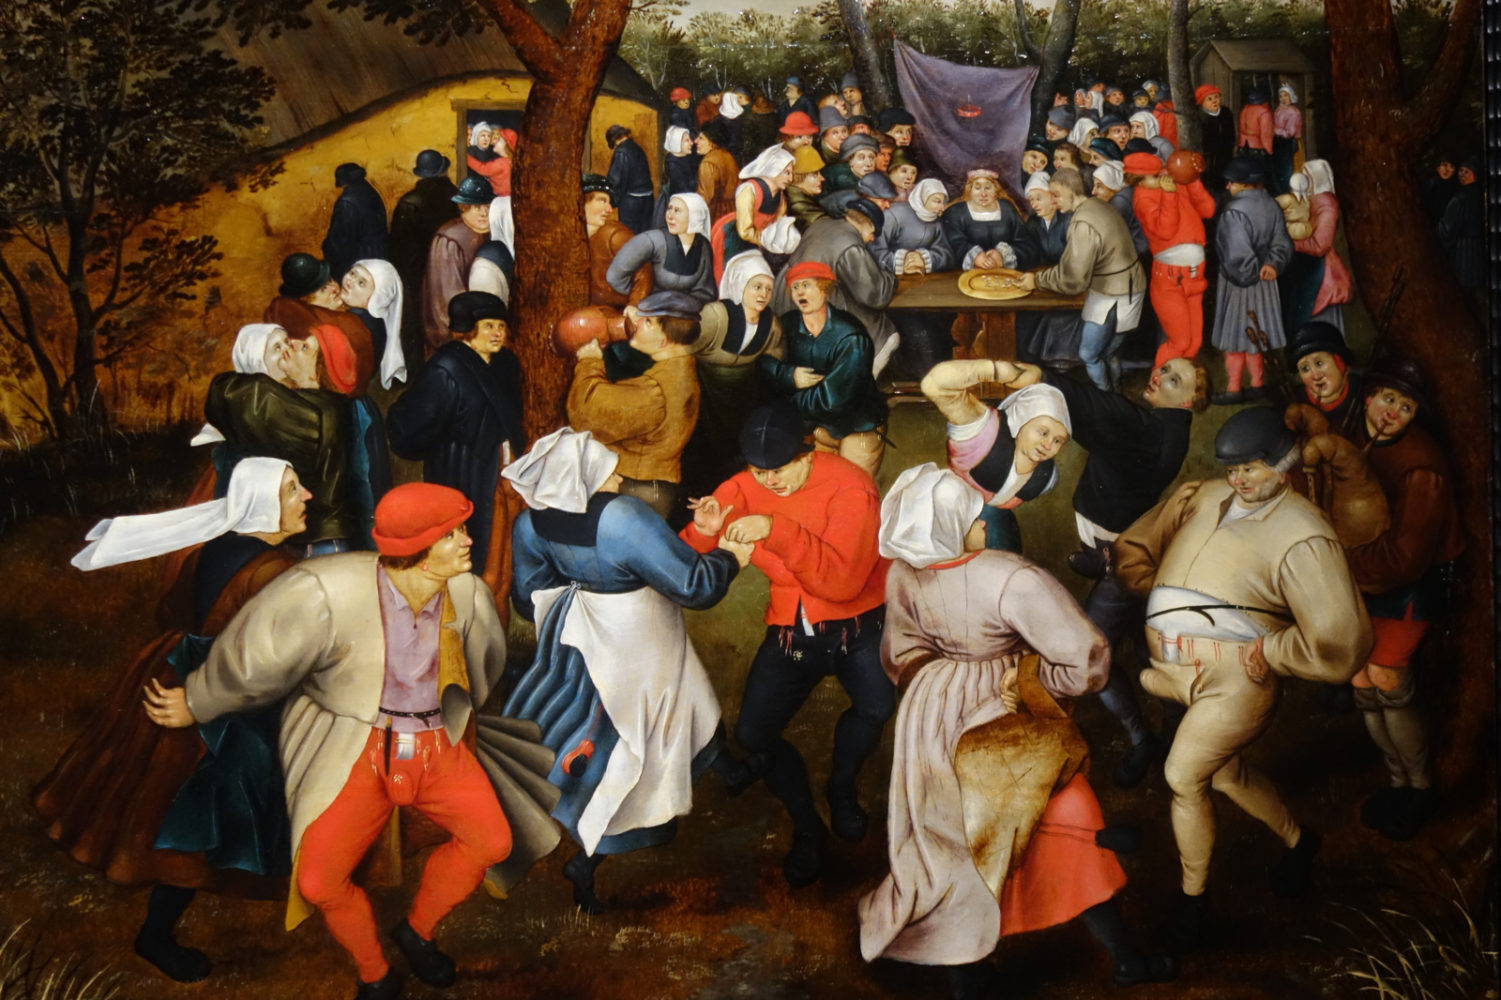 Pieter Brueghel the Younger's painting Wedding Dance in the Open Air at Palacio de Gaviria